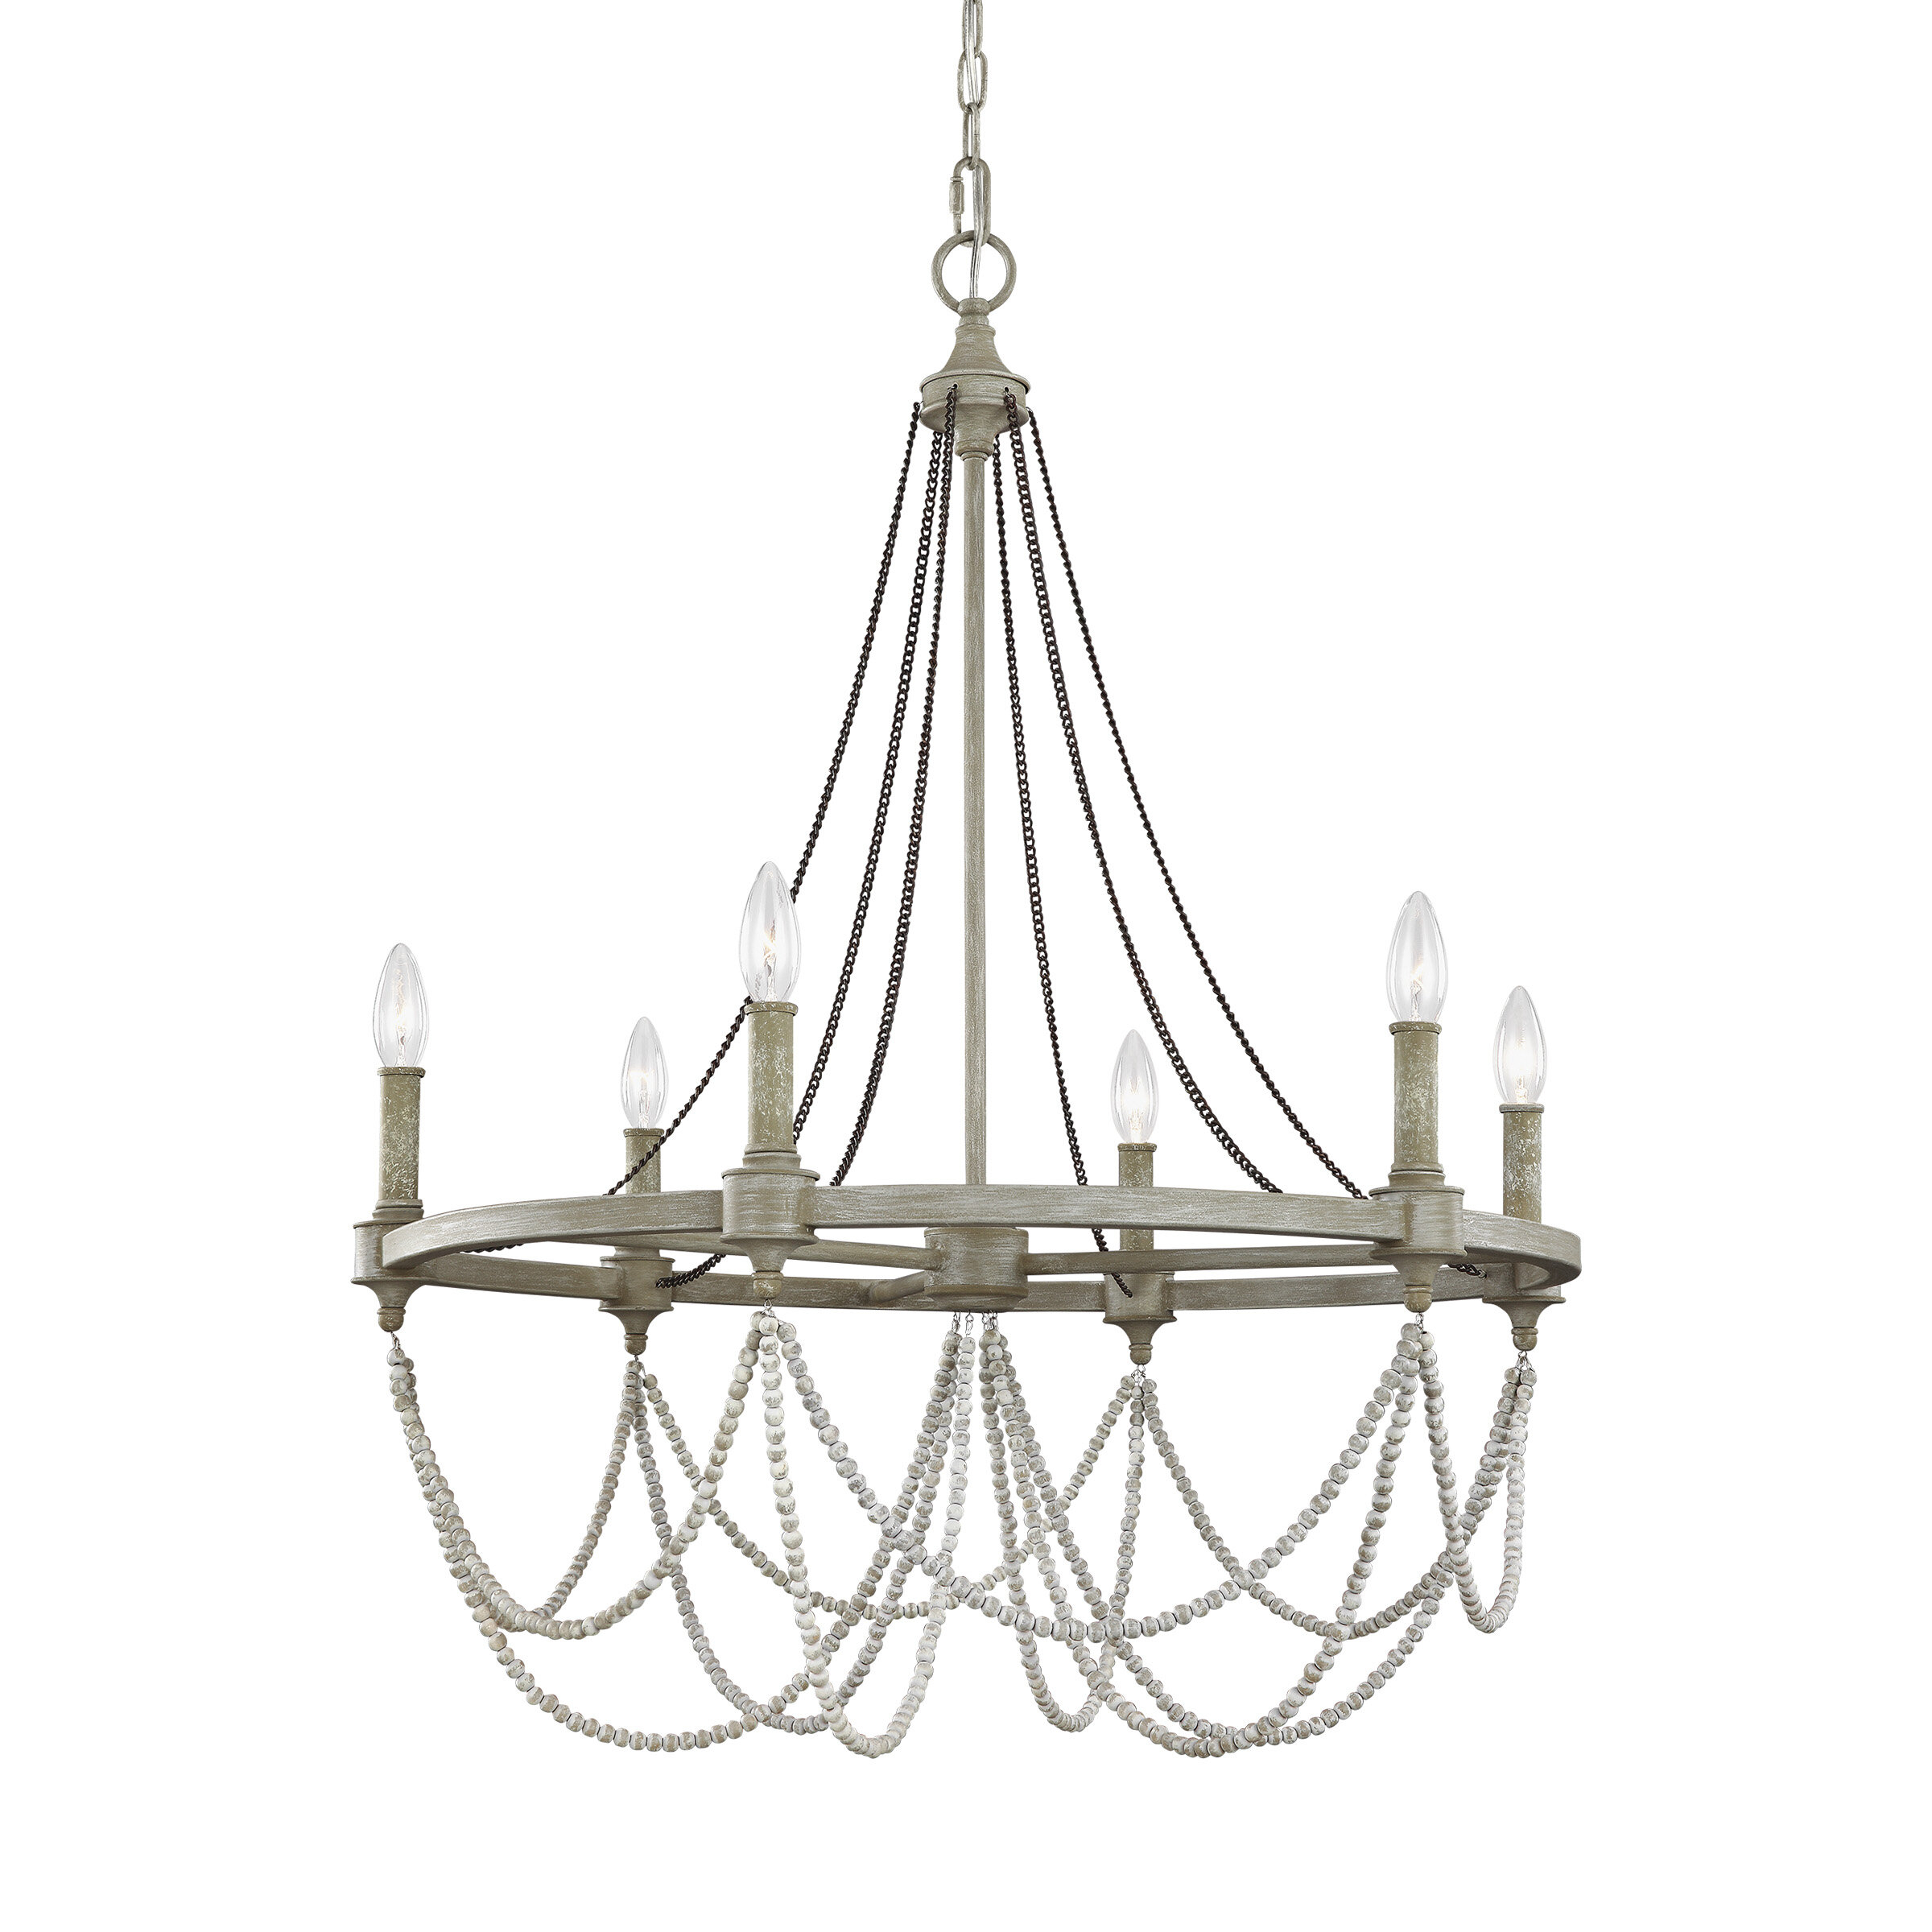 Fitzgibbon 6-Light Candle Style Chandelier regarding Watford 6-Light Candle Style Chandeliers (Image 9 of 30)